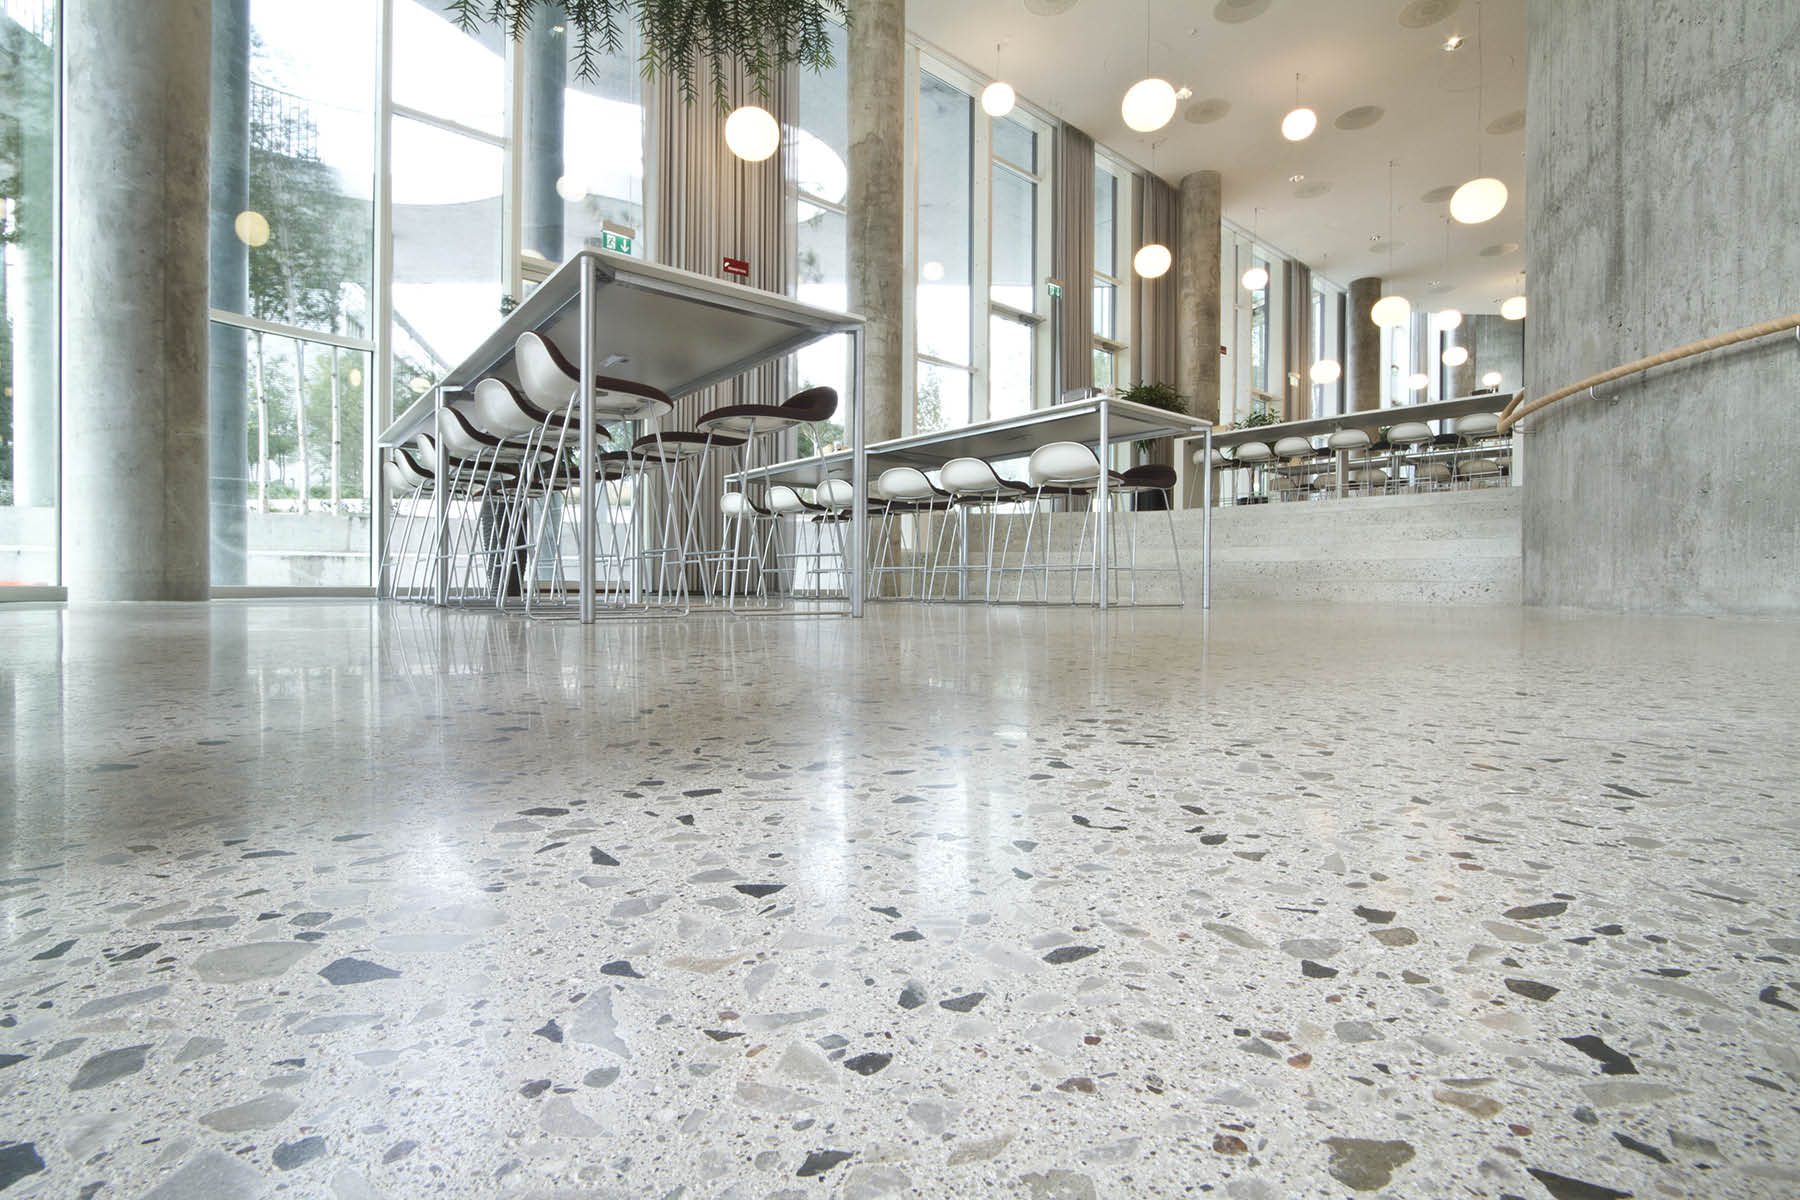 Not all shiny floors are refined polished concrete floors such as this one created with the Husqvarna HiperFloor system. To help the industry deliver more consistent, high-quality floors, task forces are developing guidelines to establish industry-wide specifications for polished floors. Photos courtesy of Husqvarna Construction Products/HTC